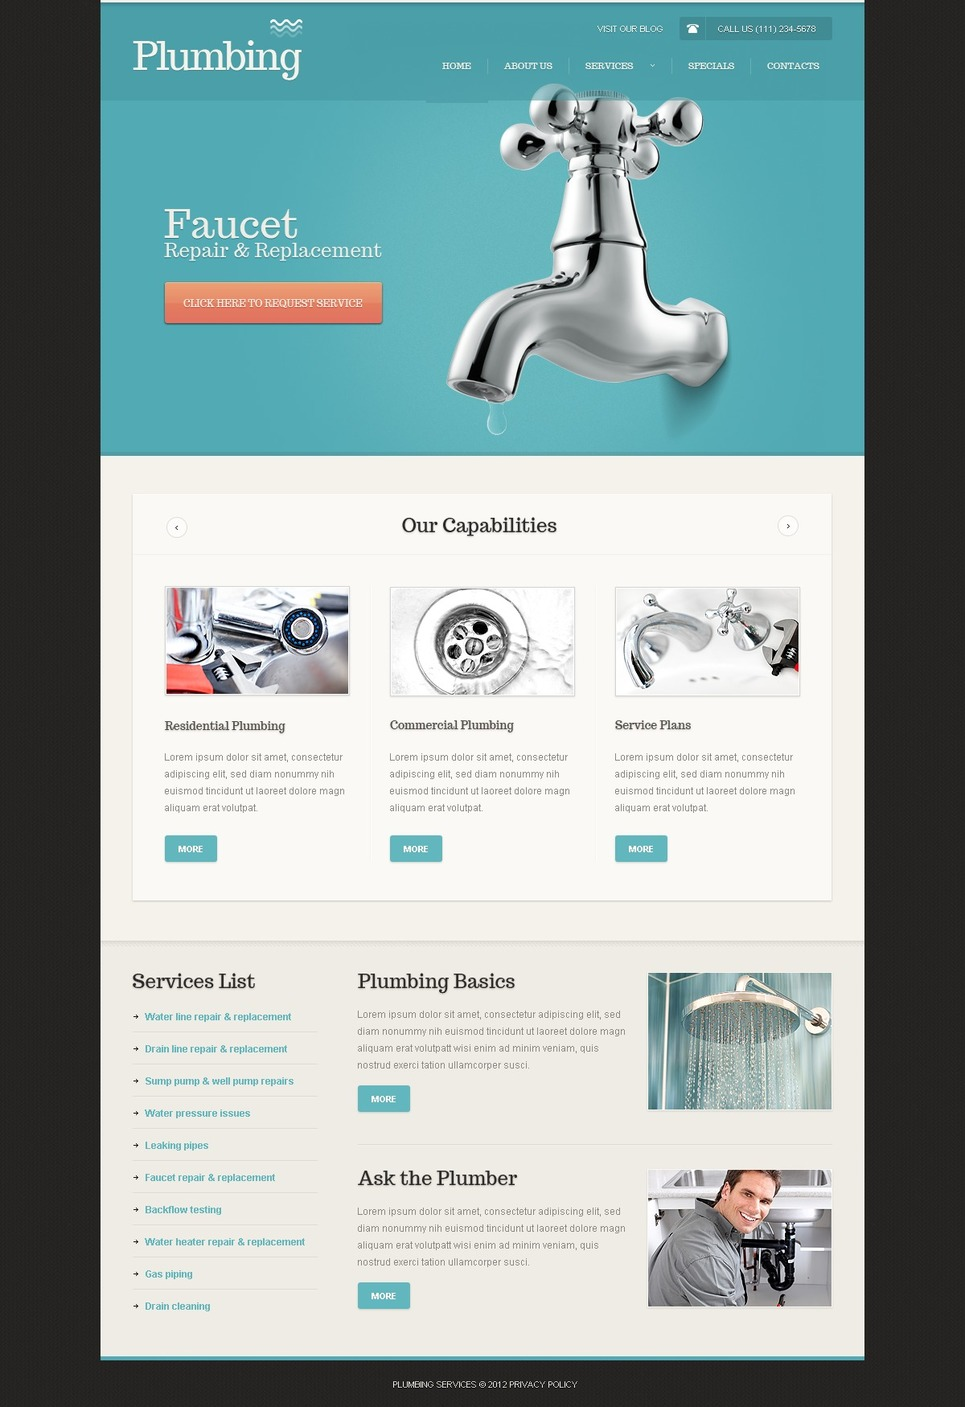 Plumbing Website Template New Screenshots BIG